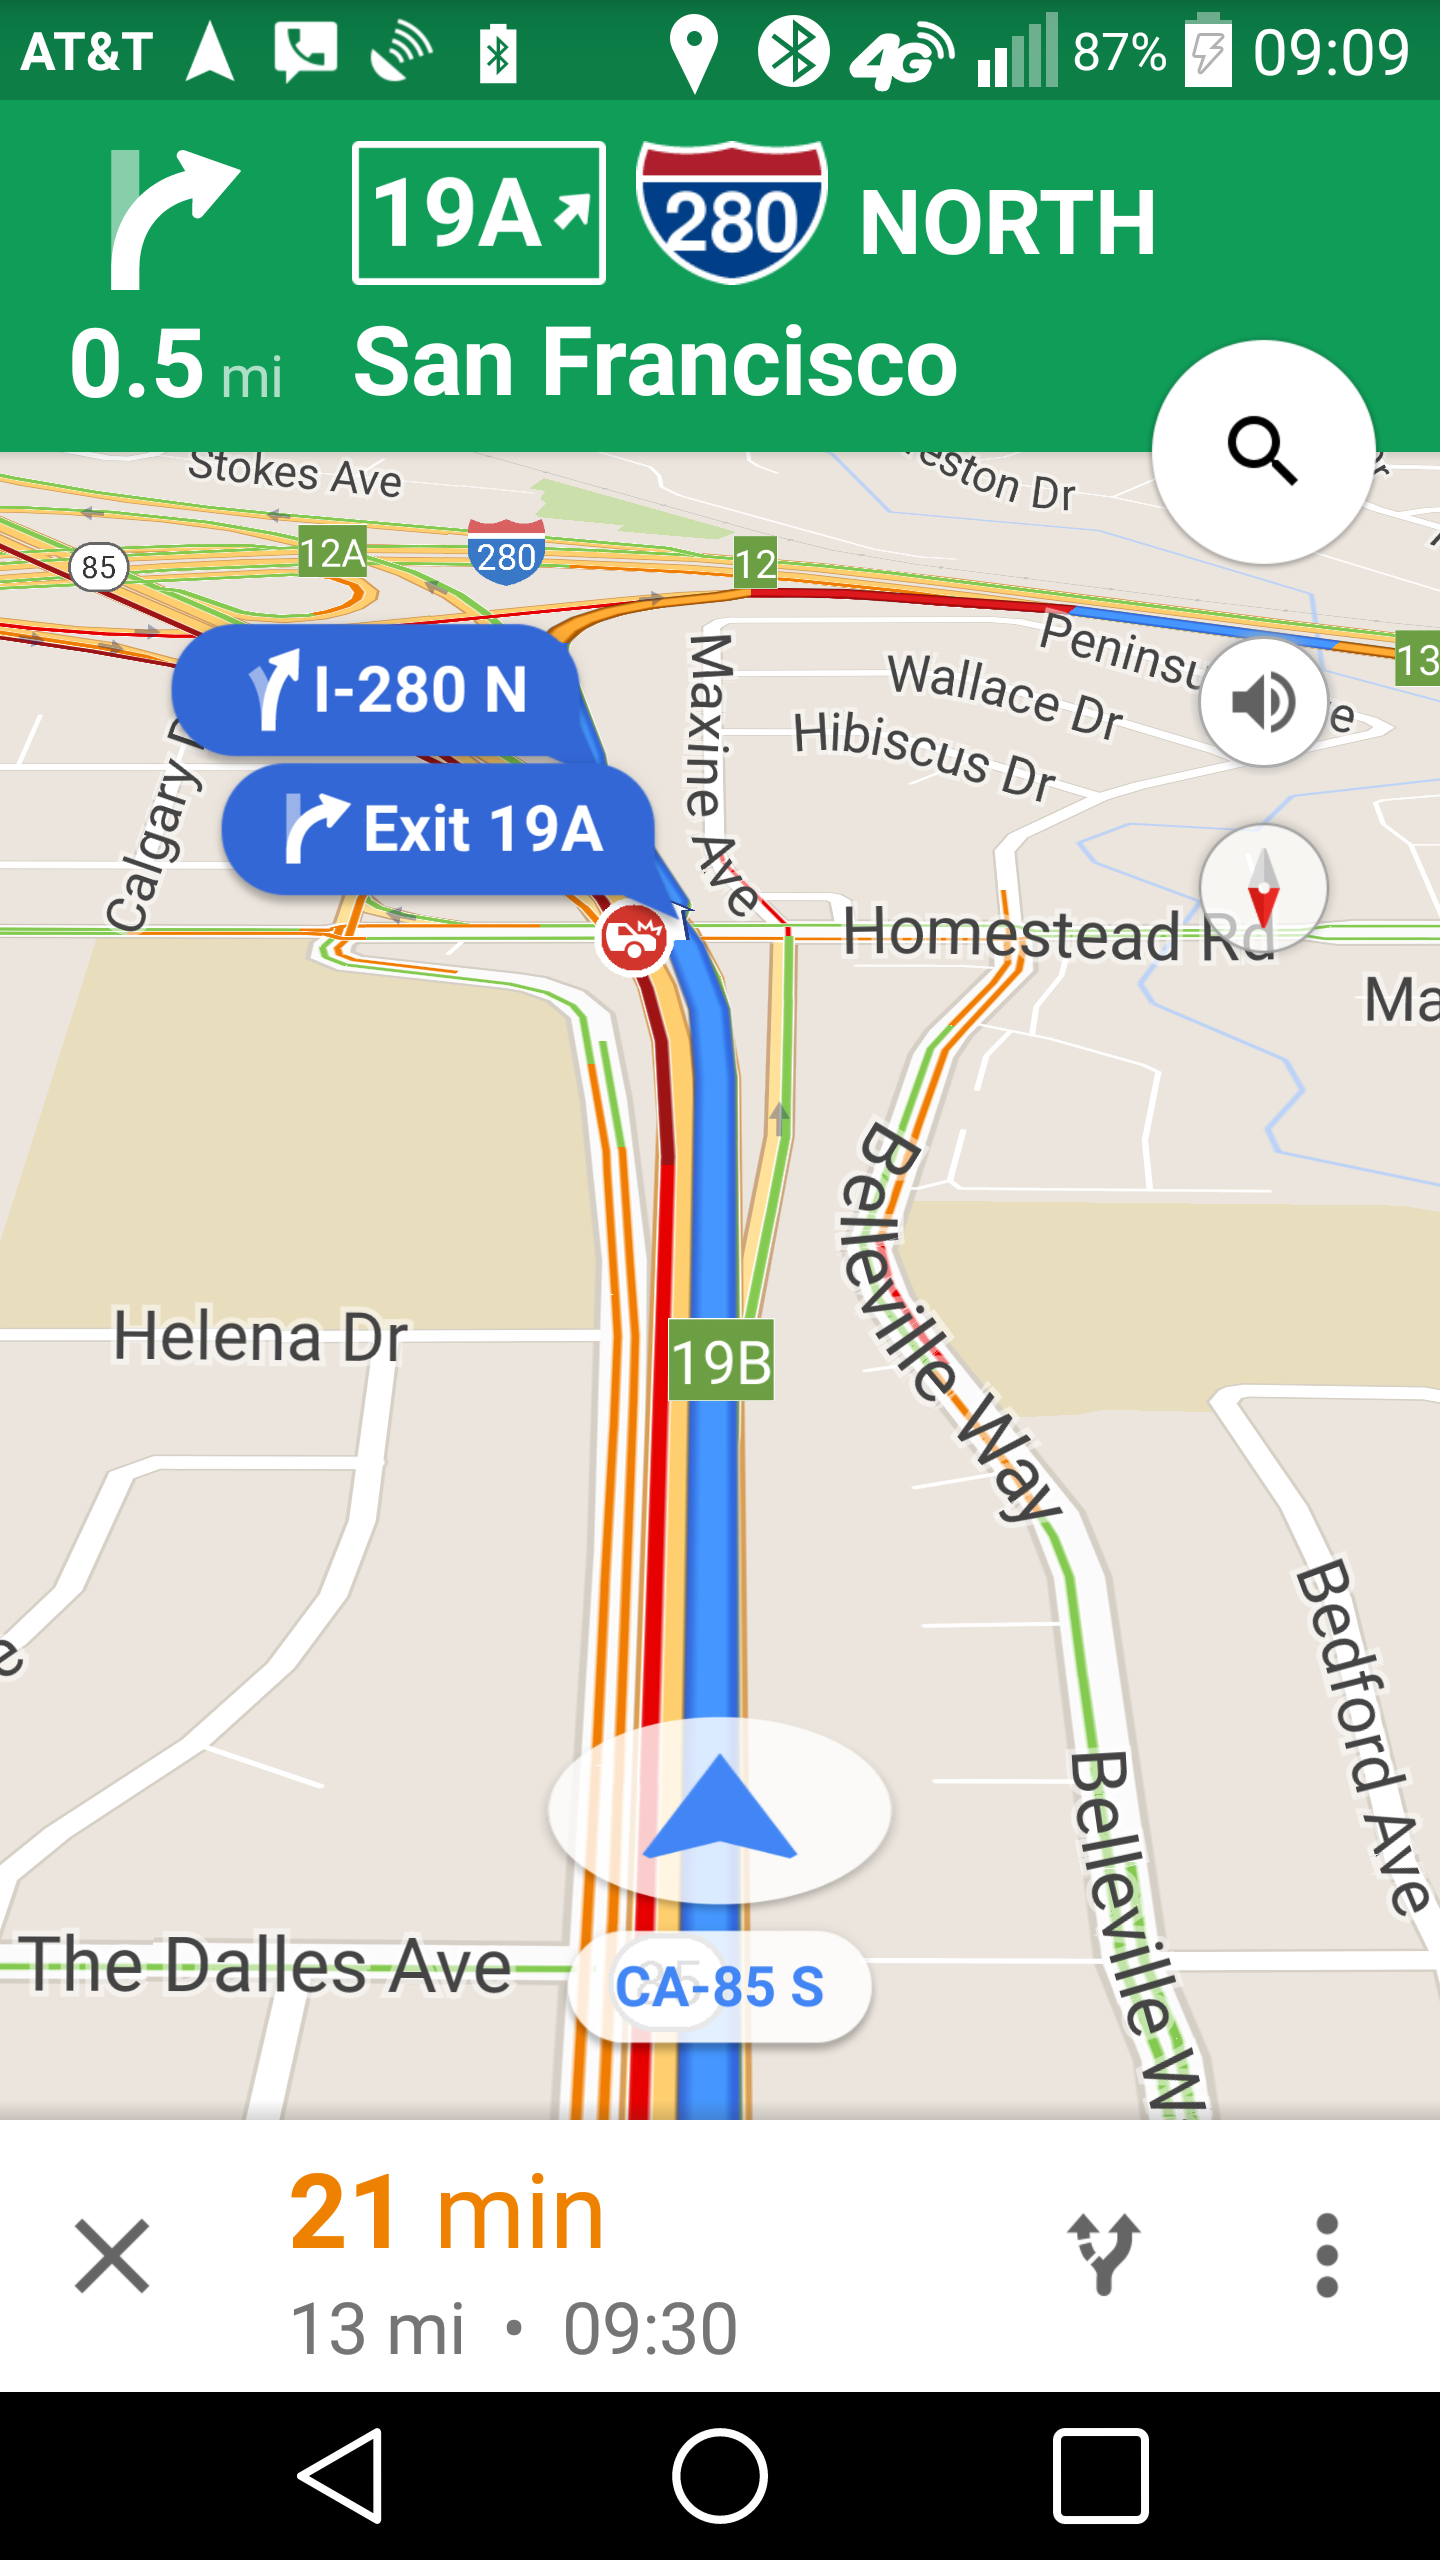 Google Maps Navigation Bubbles Containing Street And Exit